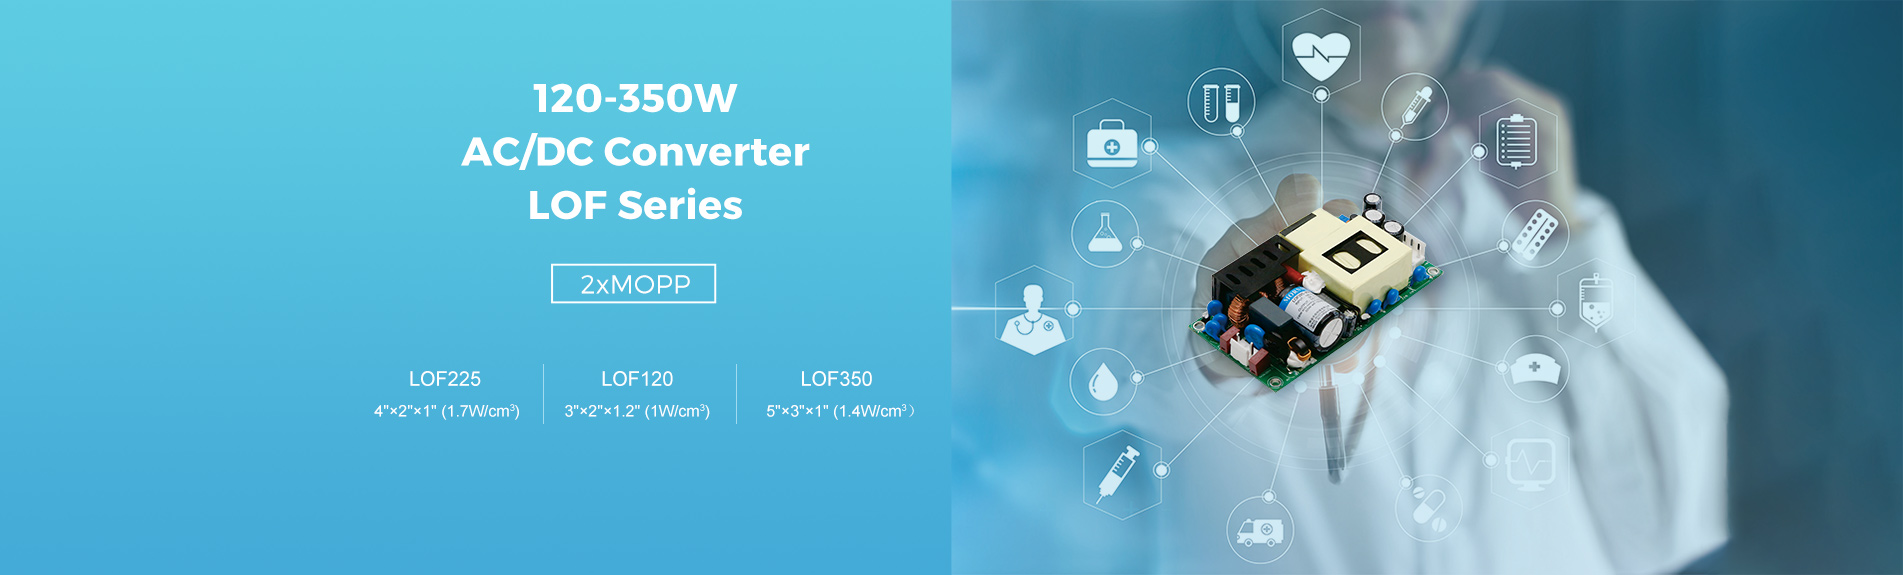 120-350W Compact Open-frame ACDC Converter Meeting Medical Standard——LOF Series